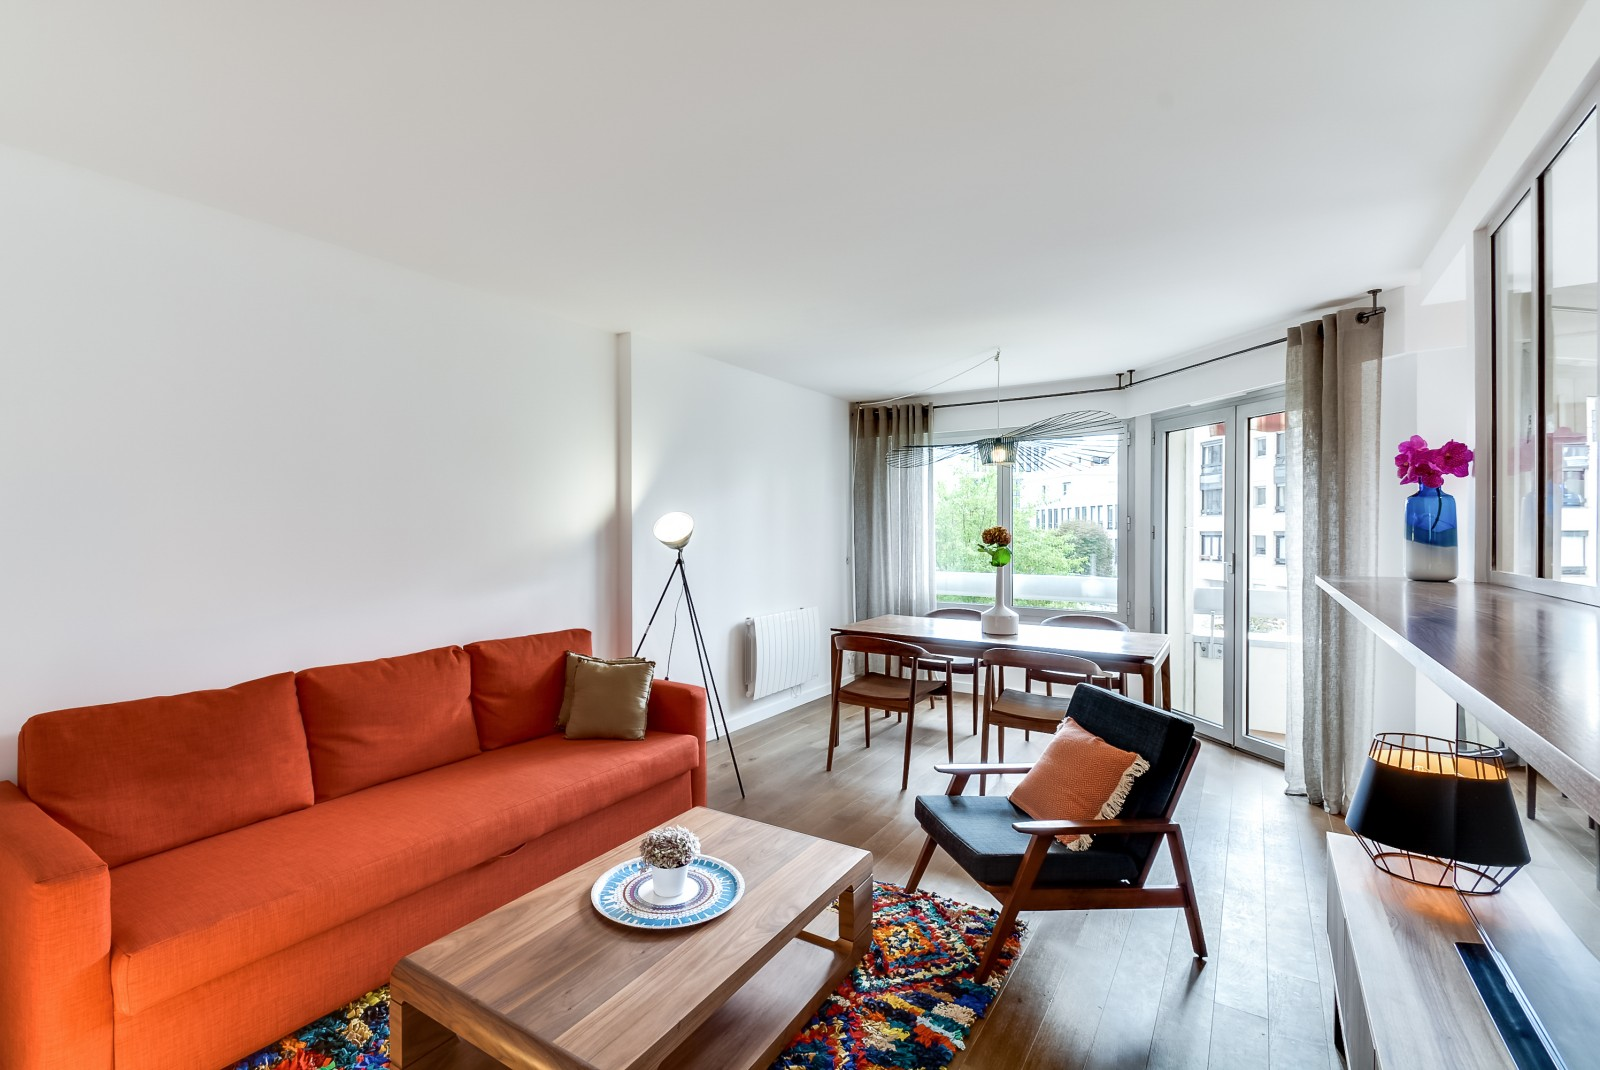 Zoning Living Room's Multiple Functional Areas with Decor and Lighting. Bright spot of the orange sofa in the gresh an dlight modern area